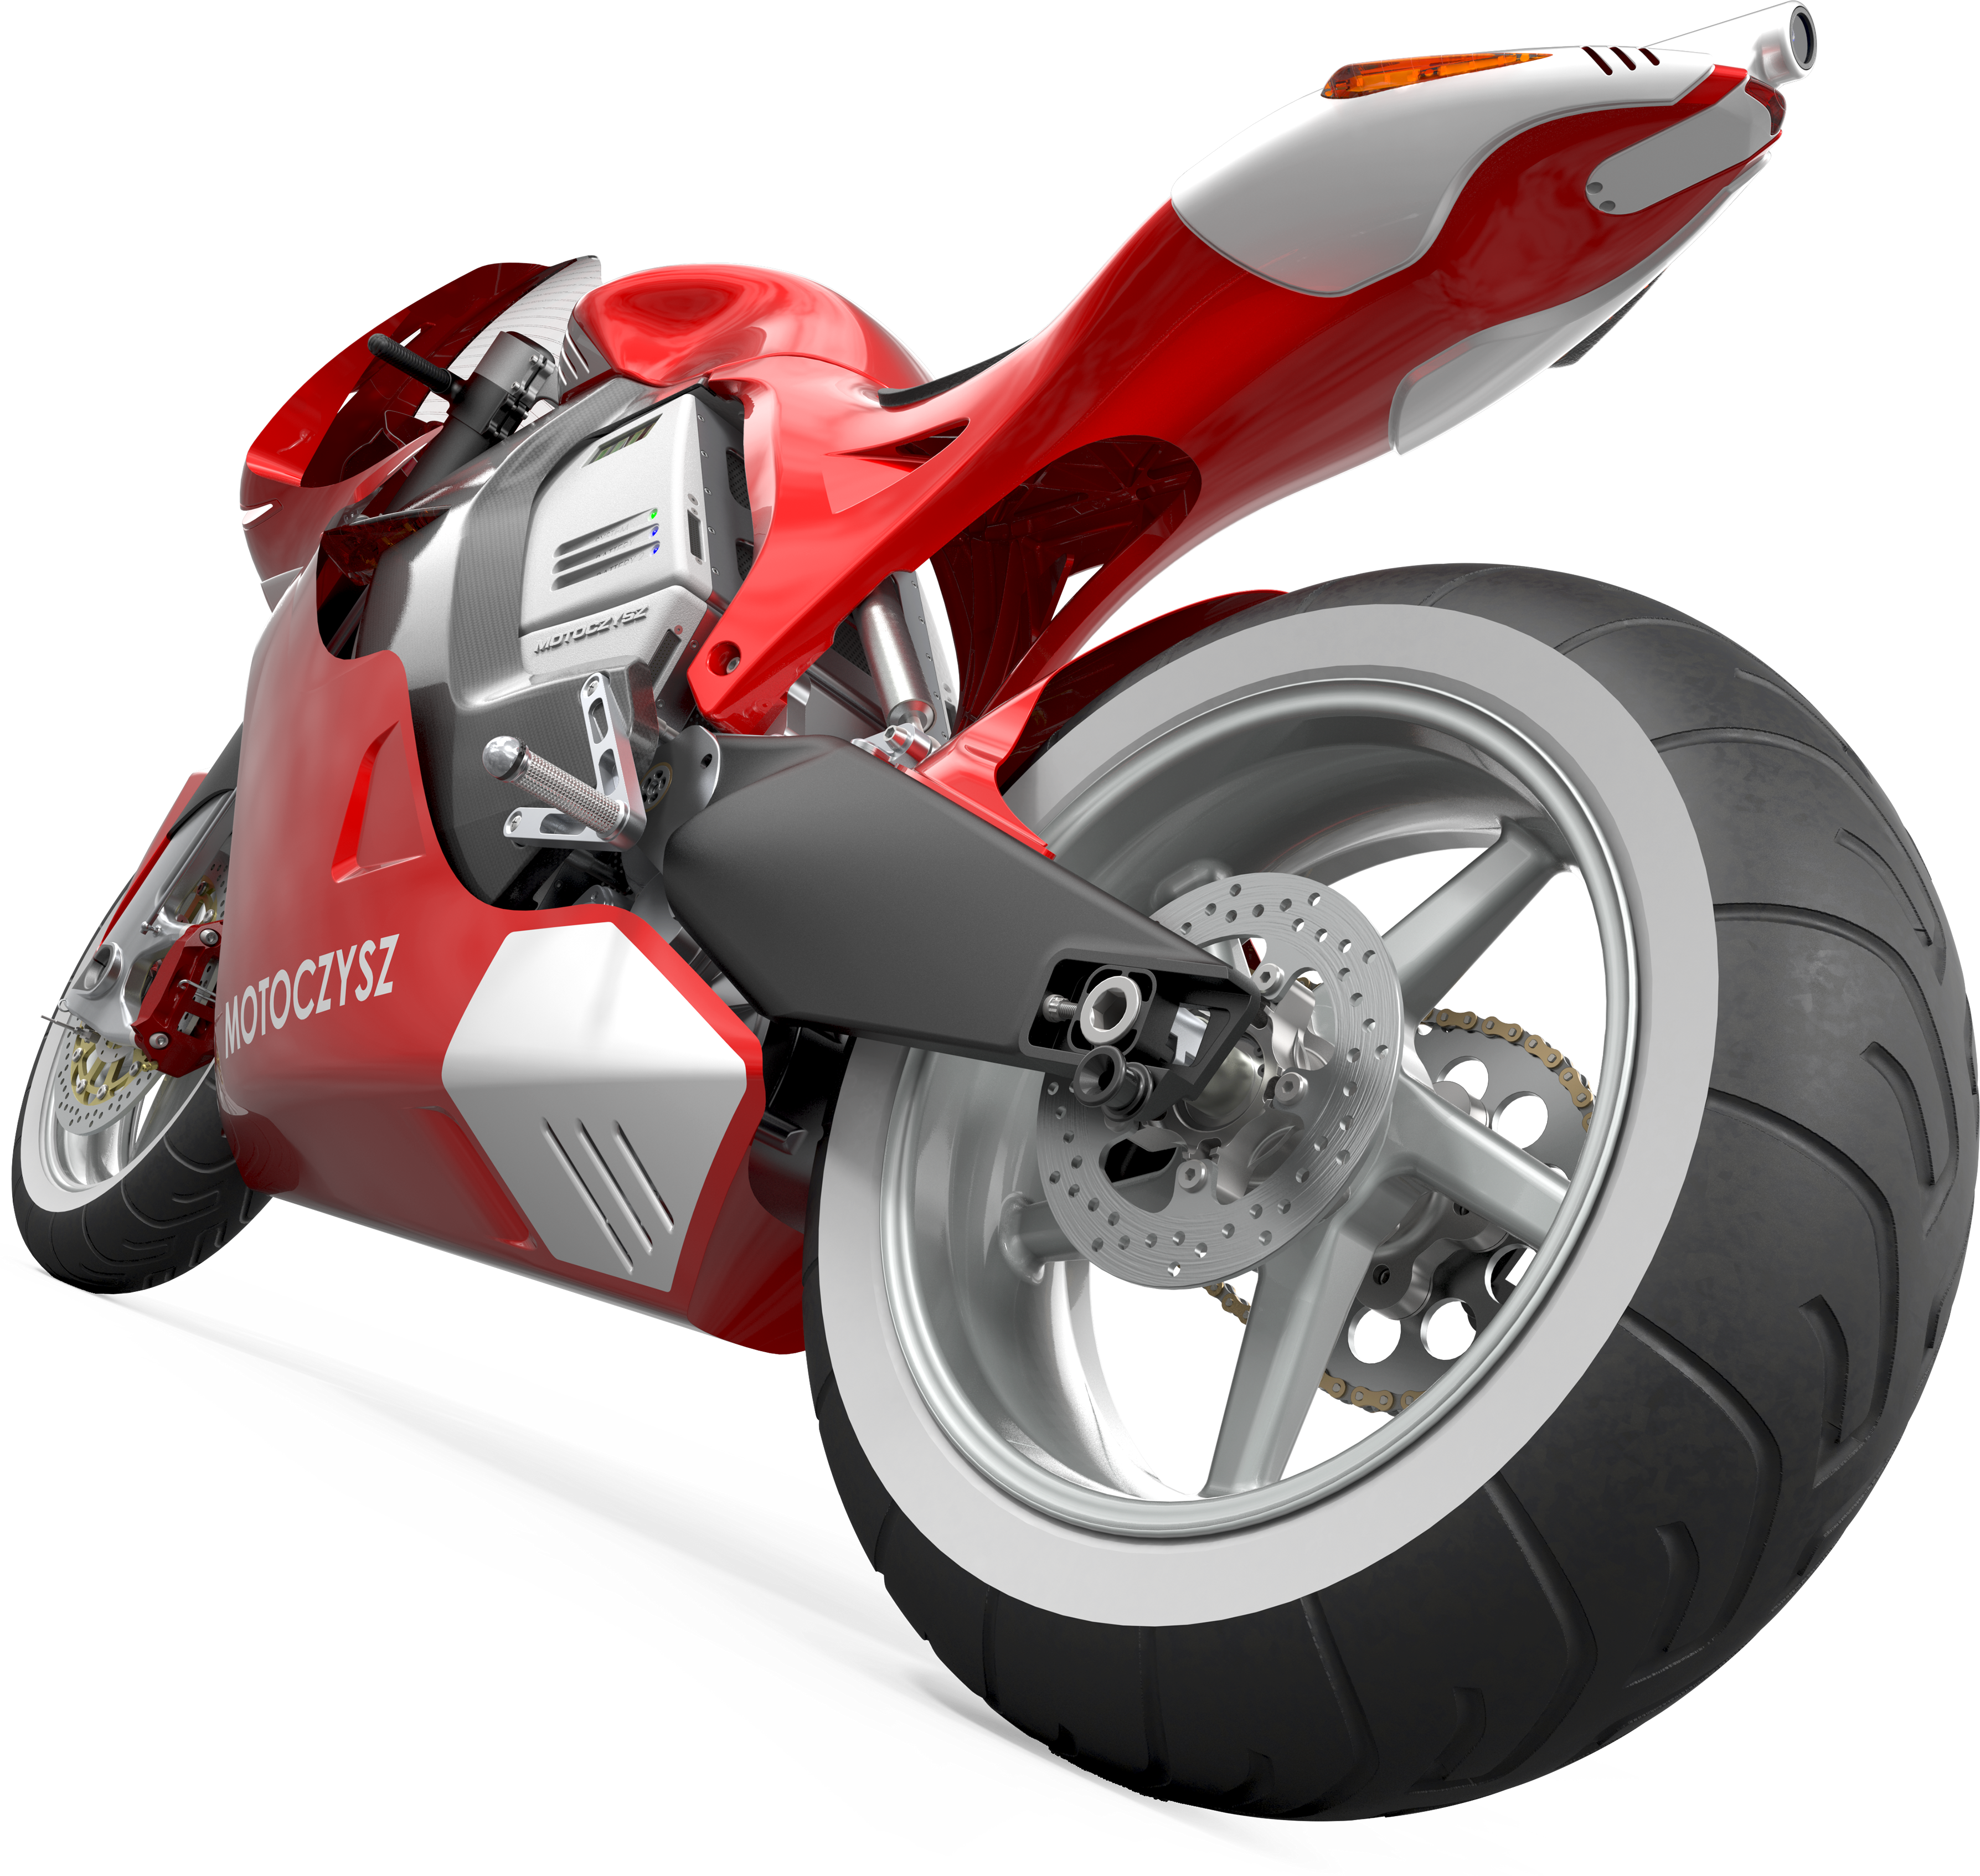 Motorcycle PNG Picture image #20338